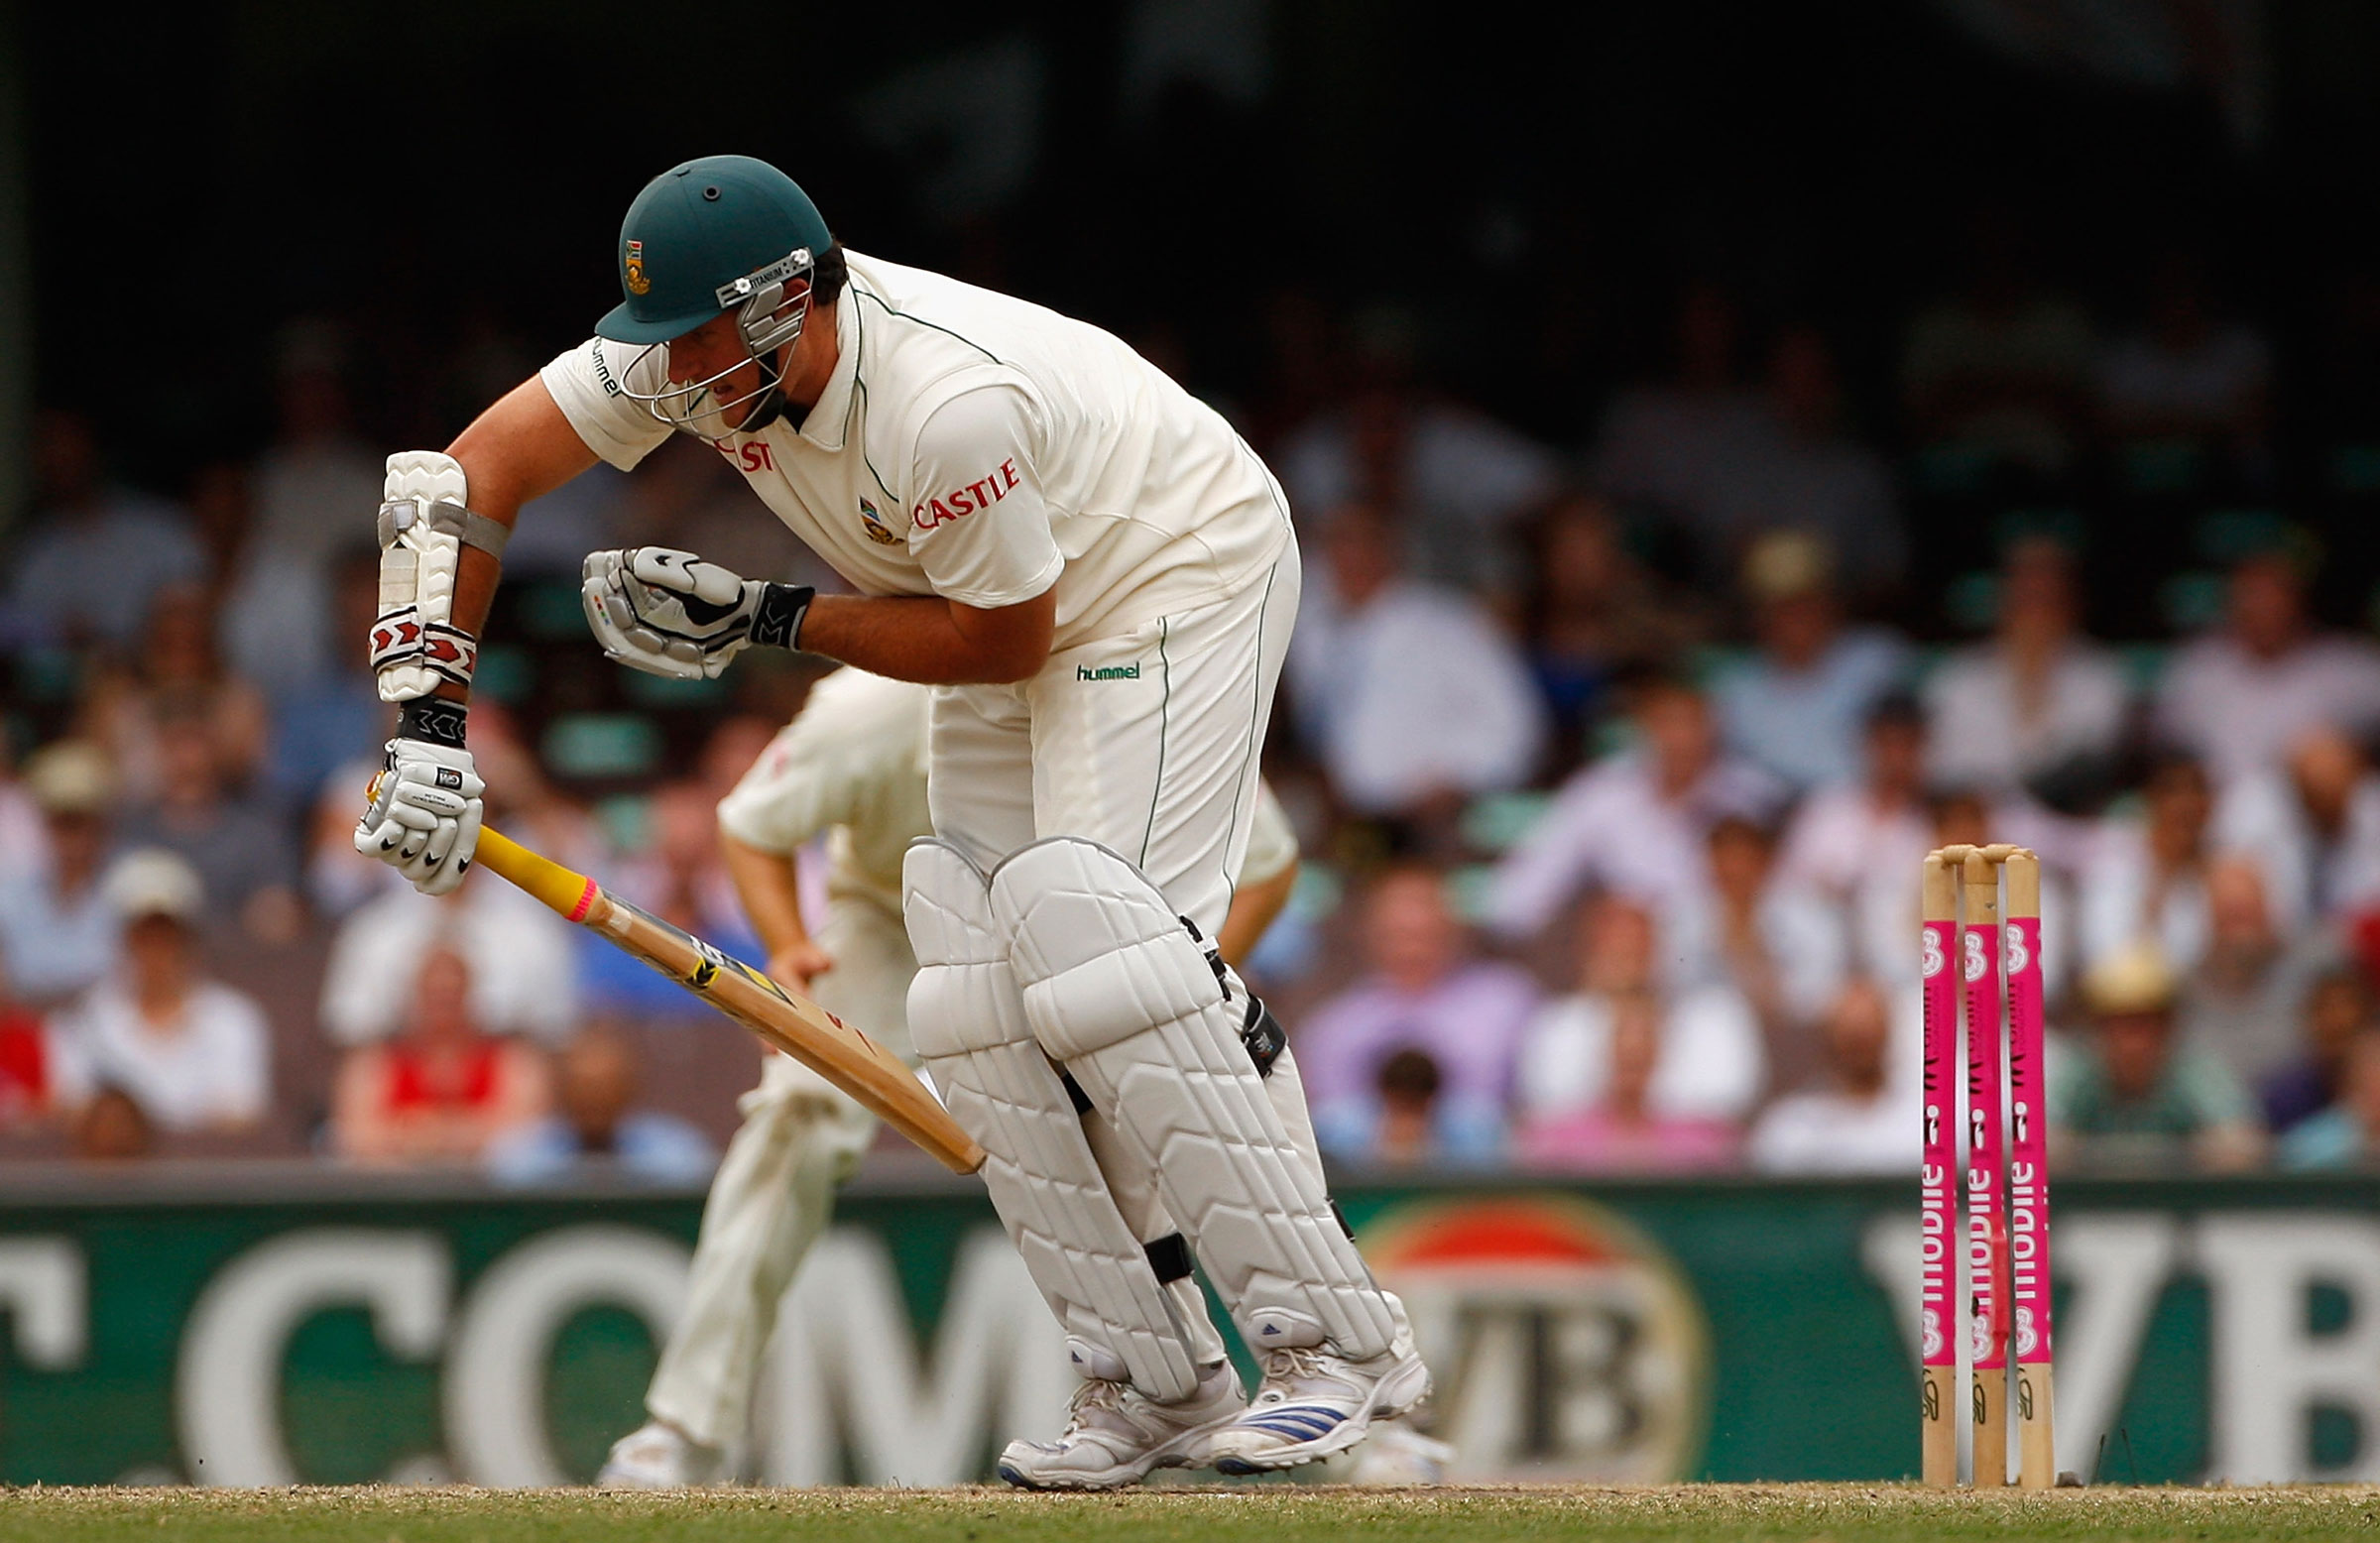 Watch: The day Graeme Smith batted with a broken hand at the SCG